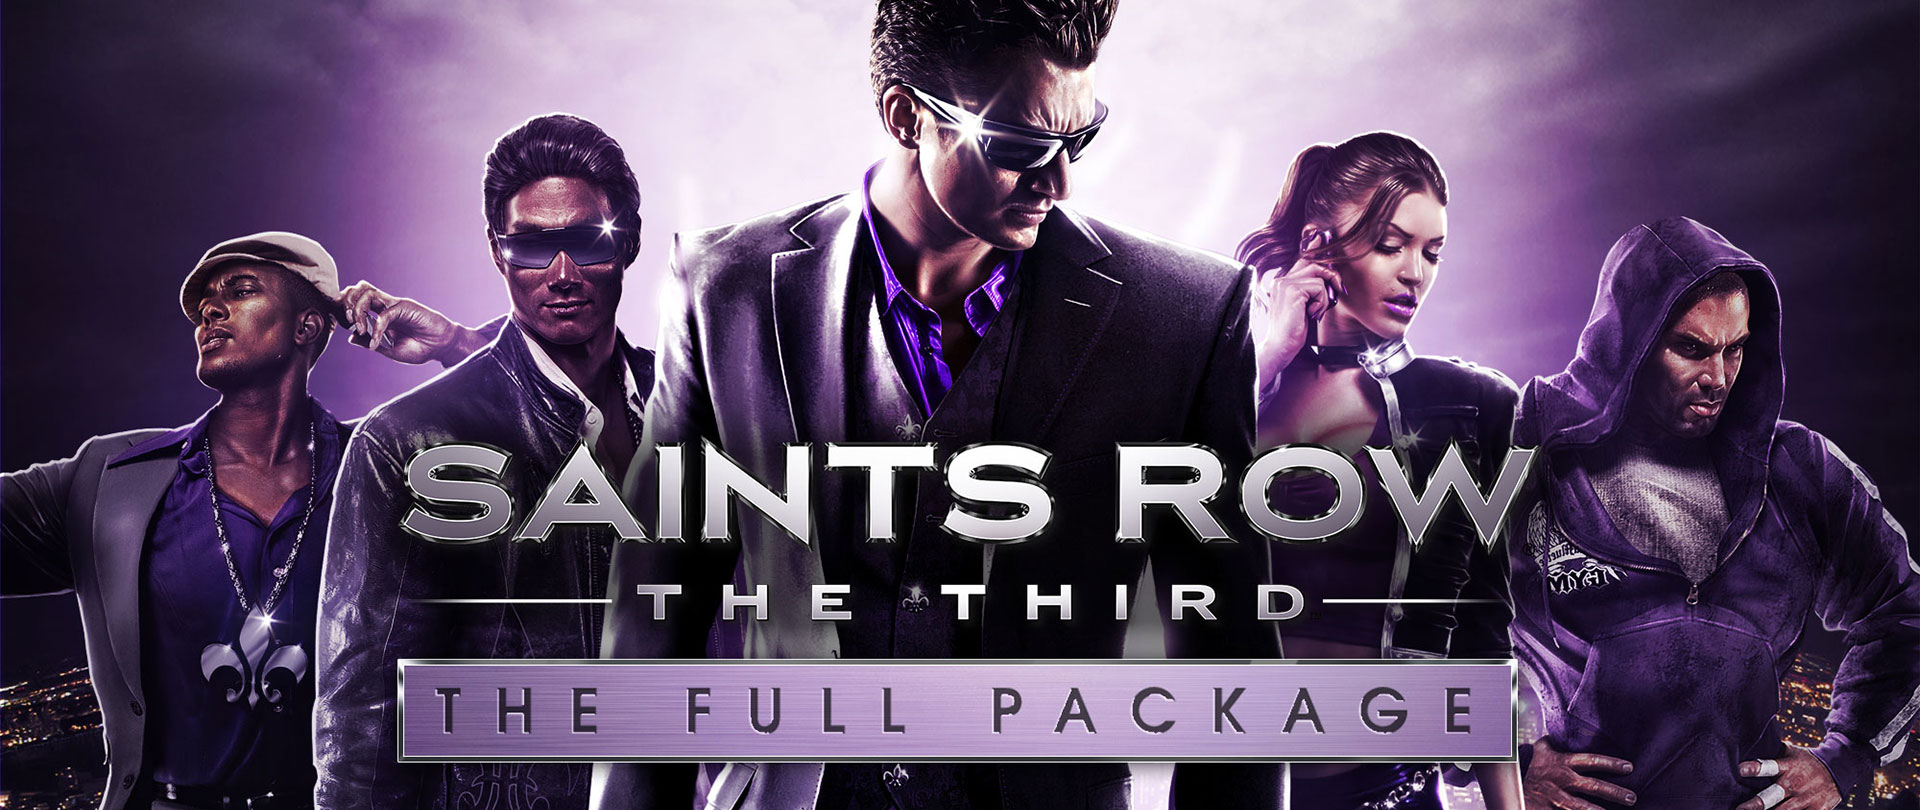 Saints Row The Third - Memorable Moments, ecco il primo episodio thumbnail